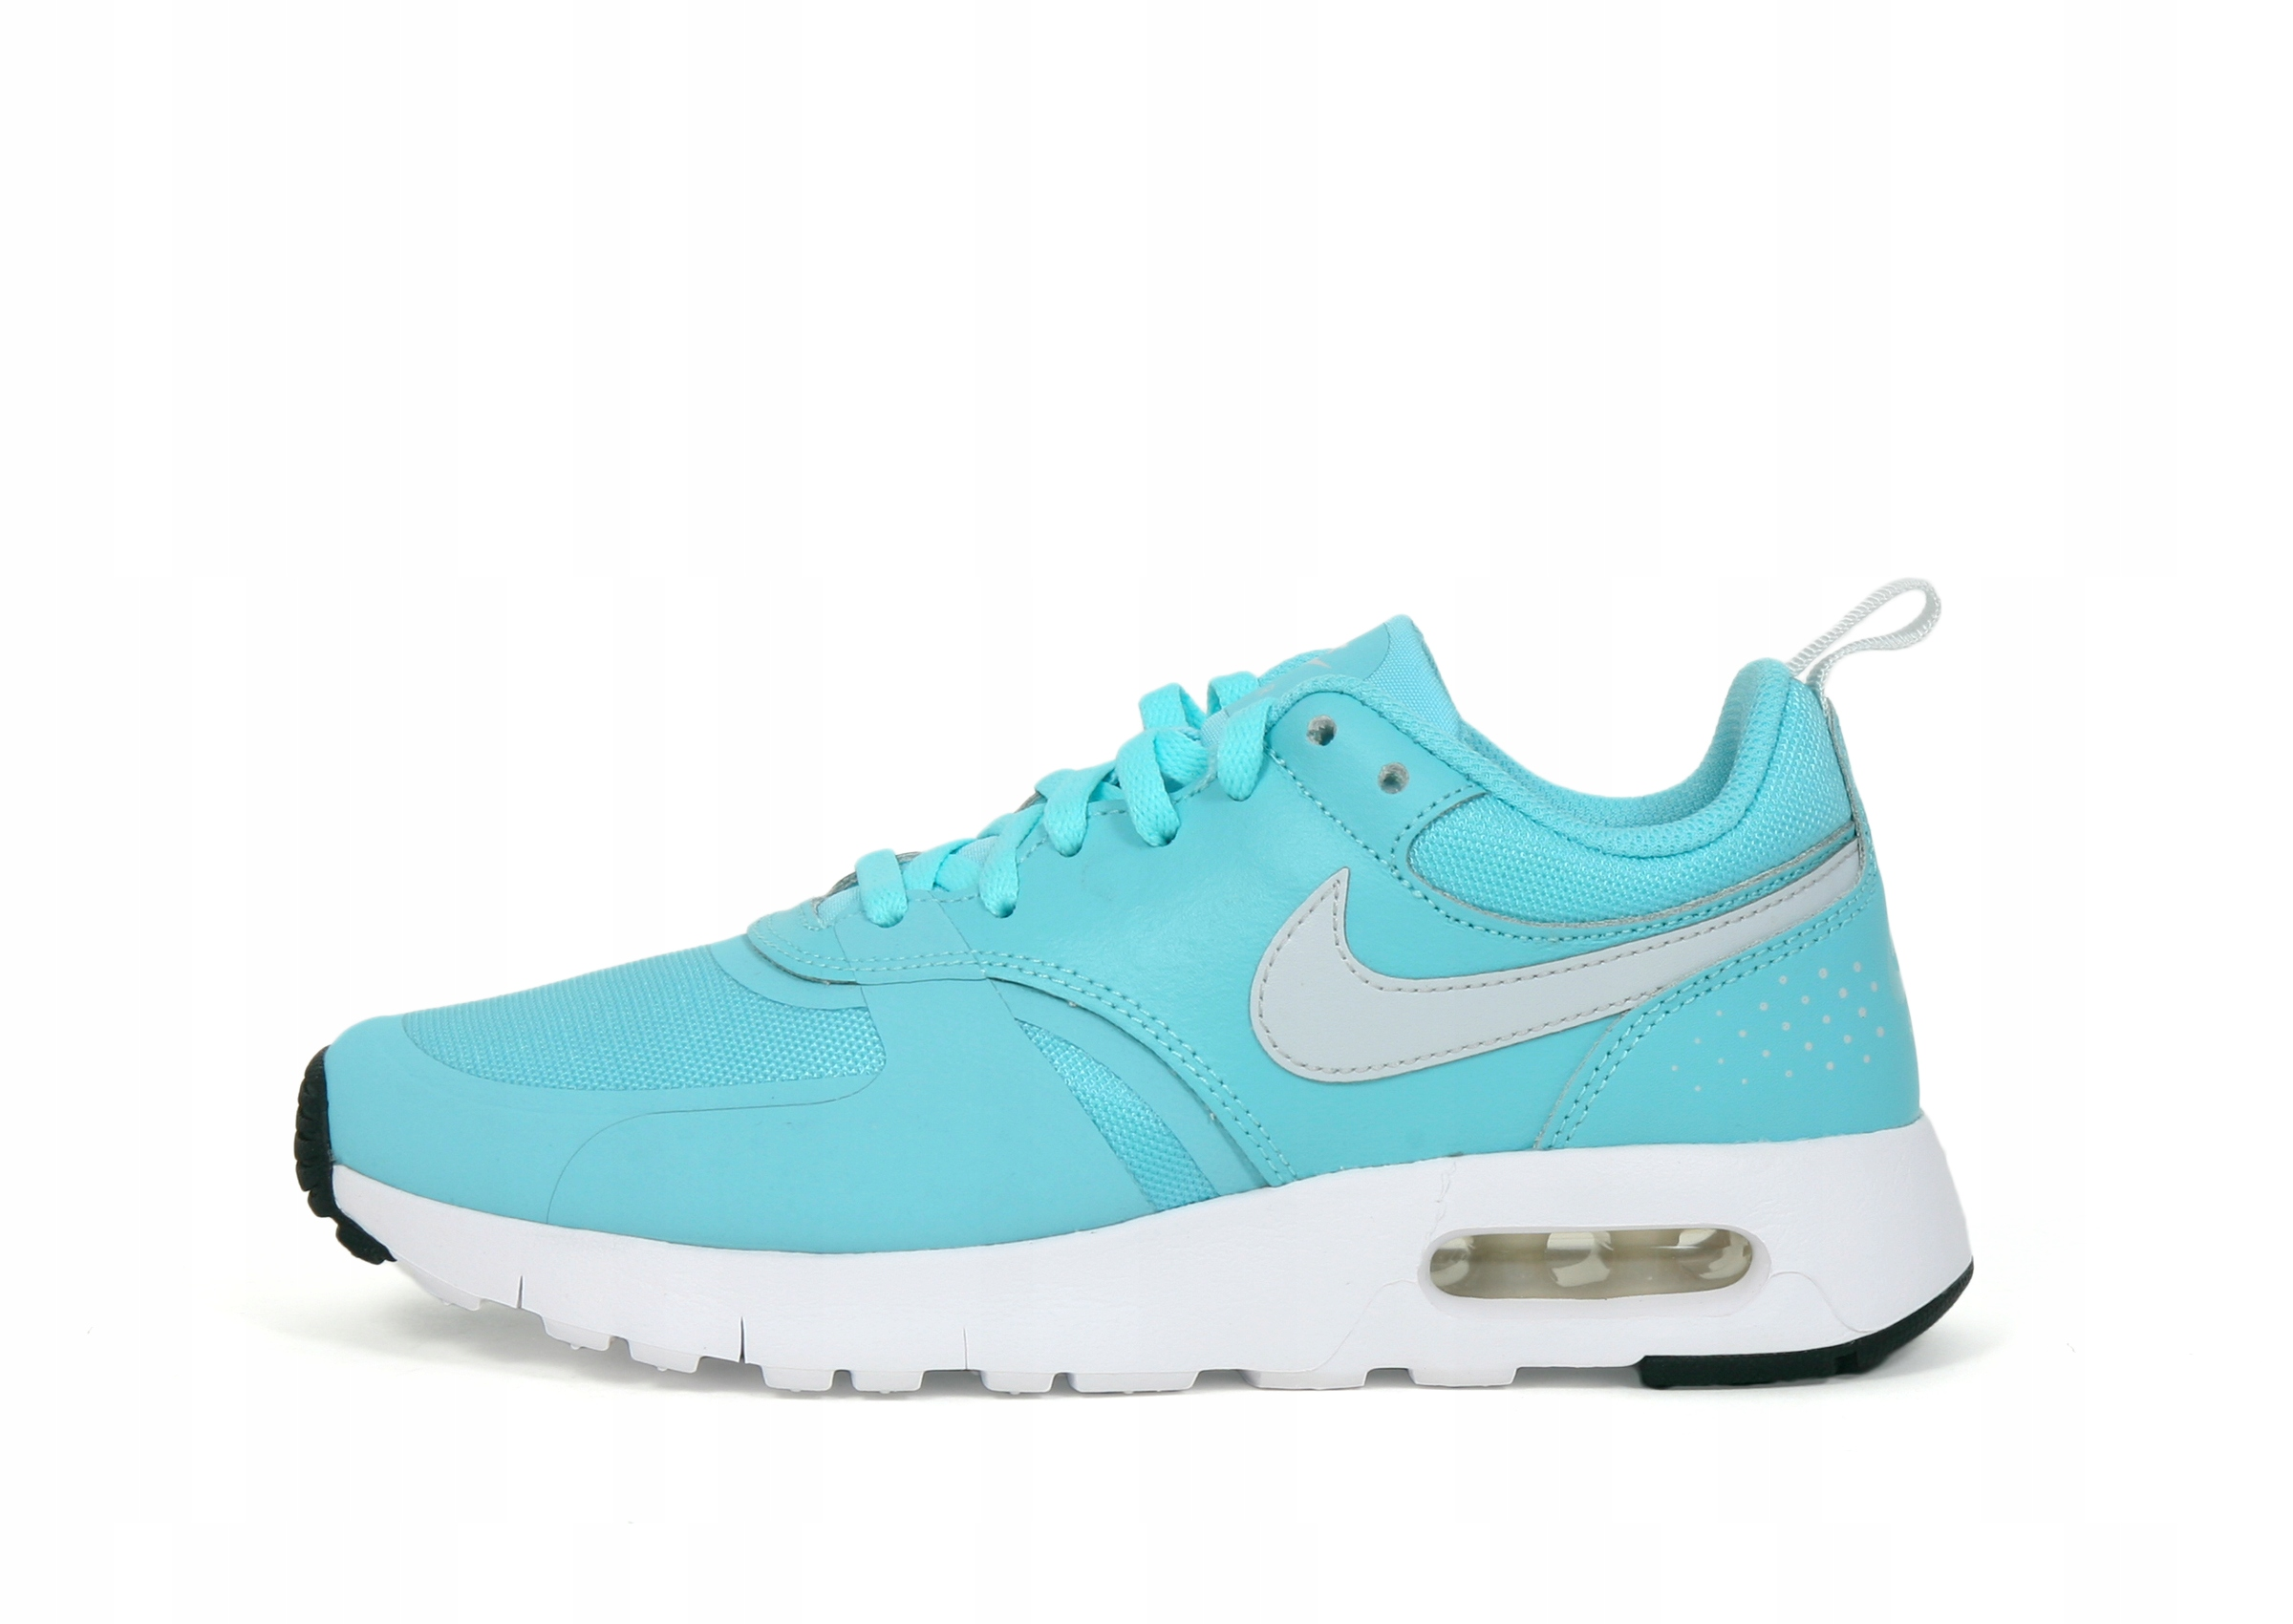 hot sale online ad92e 812ef Buty NIKE AIR MAX VISION (GS) AH5228-400 roz. 38,5 7688350648 - Allegro.pl